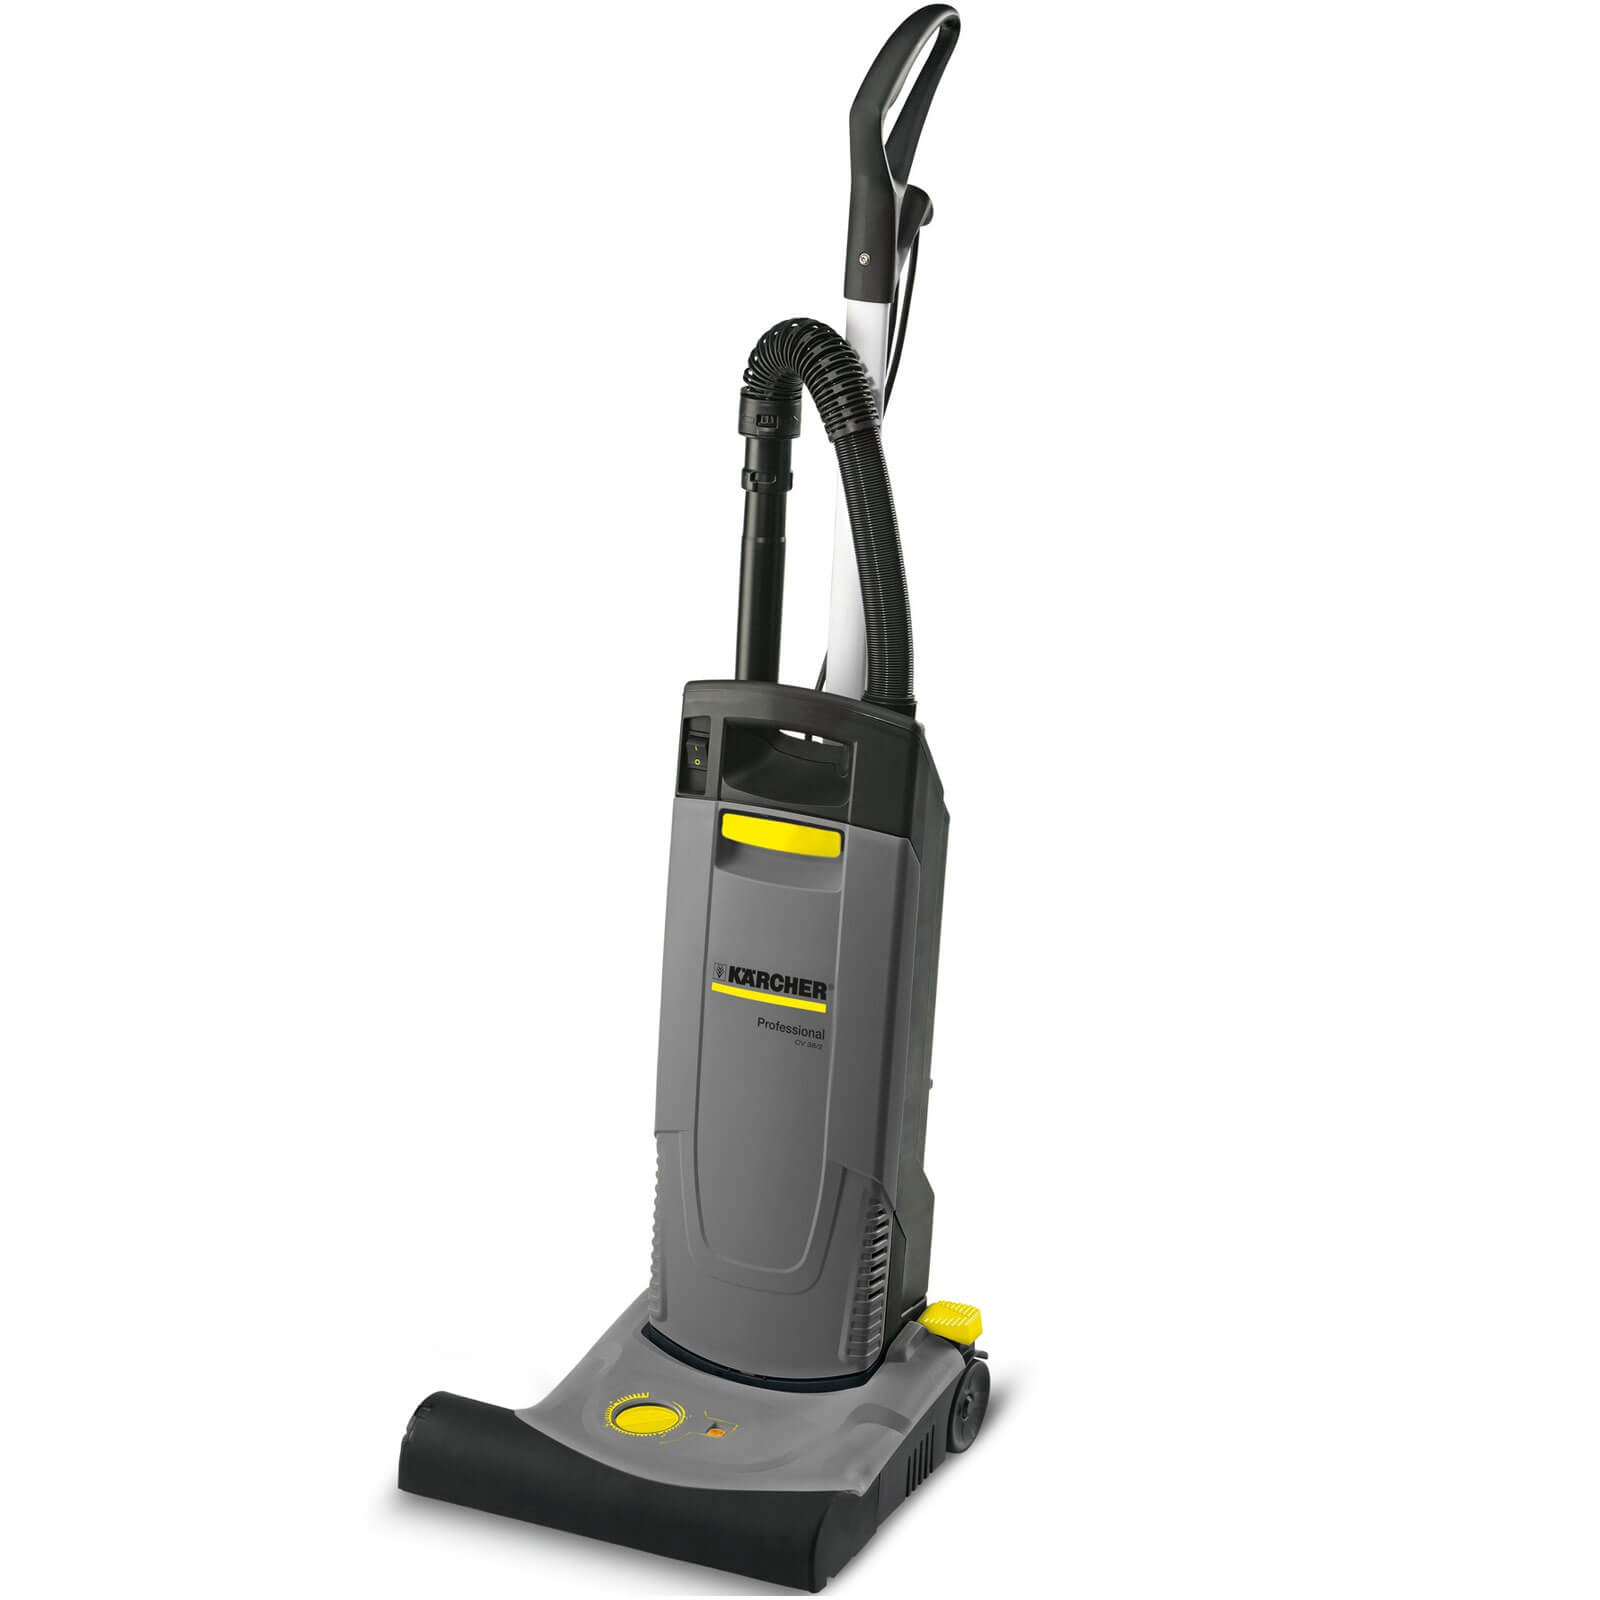 Karcher CV 382 ADV Professional Upright Vacuum Cleaner 240v